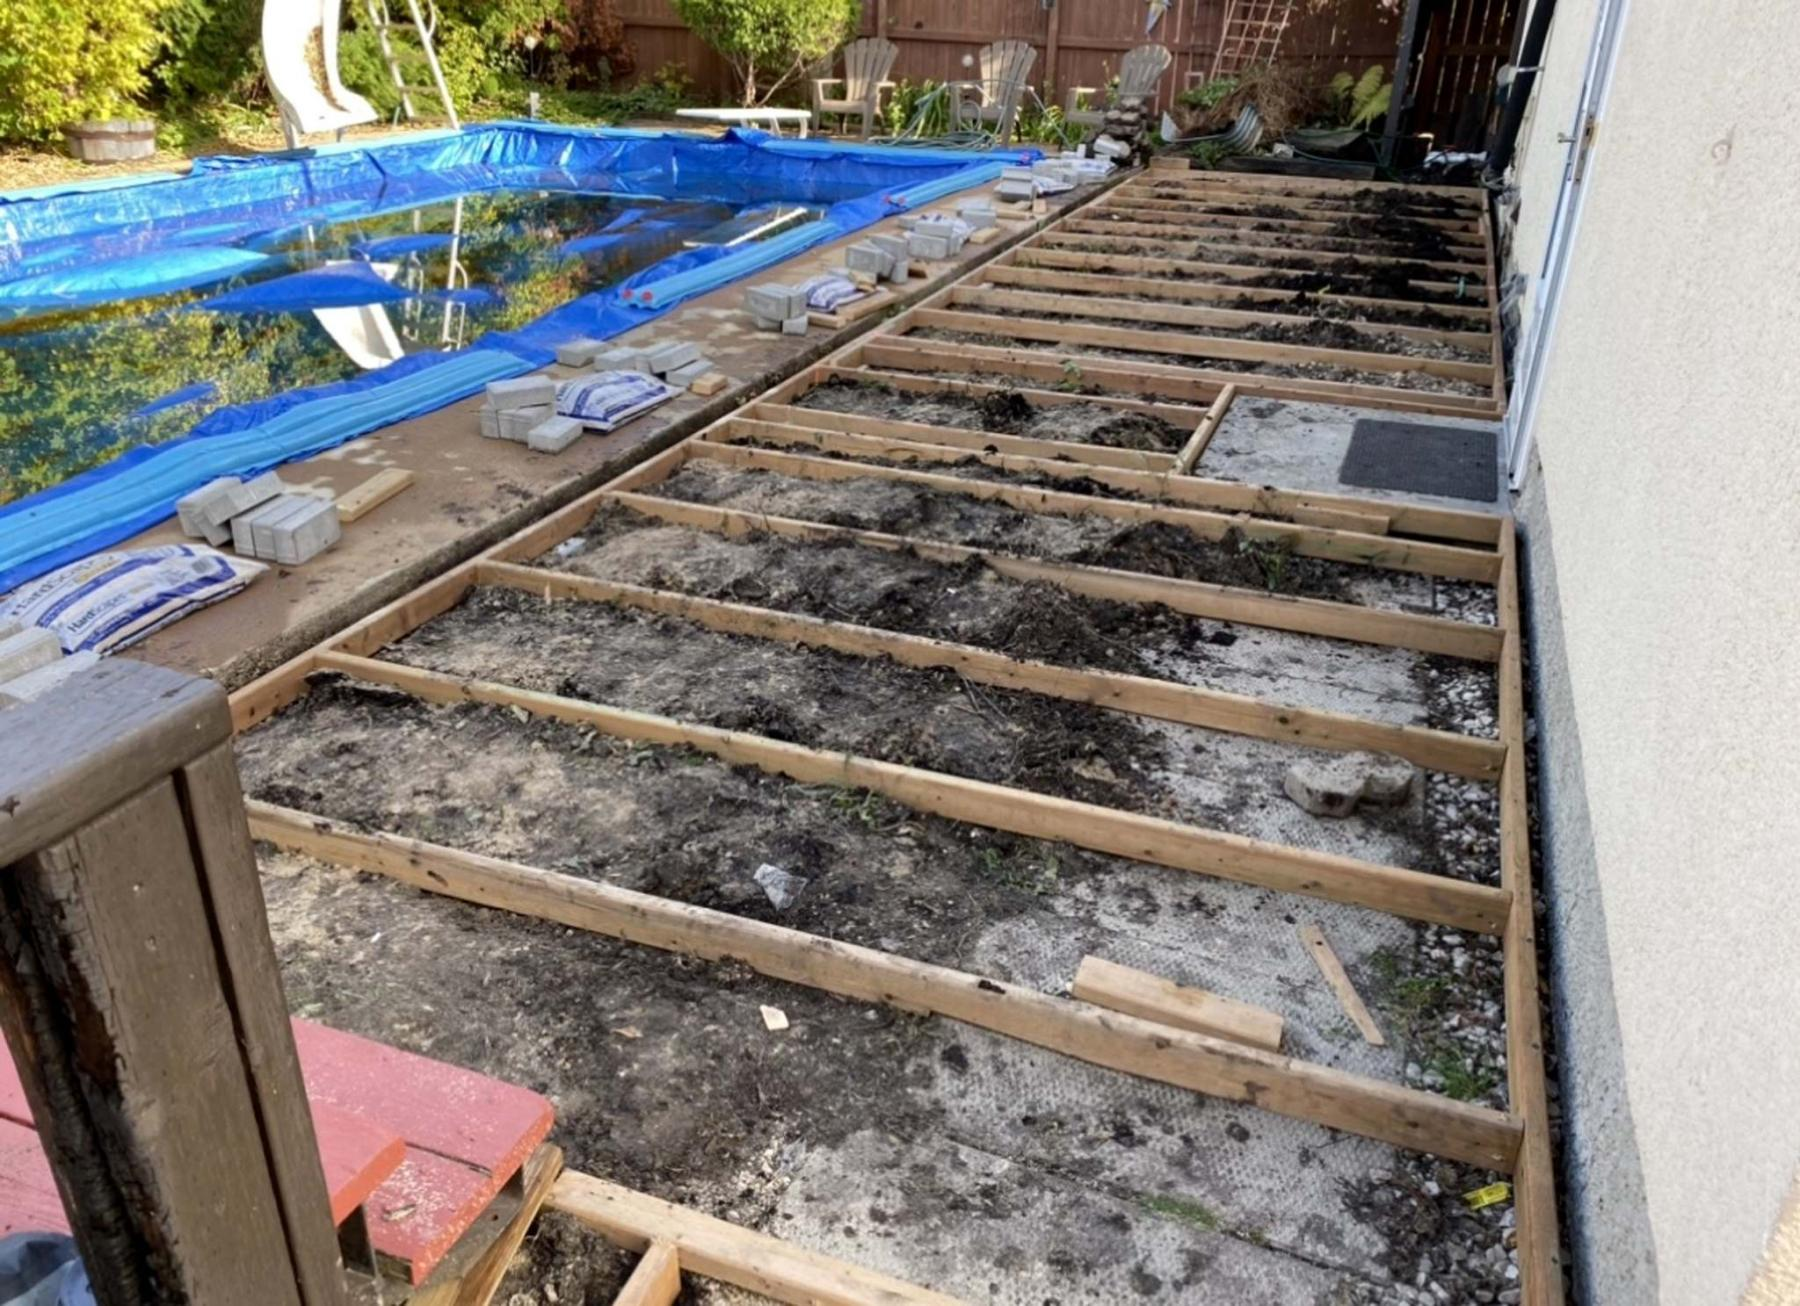 <p>The 2x6 brown-treated boards (left) complete the top-decking of the 2x4 framework for the low-level deck. The 2x4 joists (above) are set onto blocks within troughs pre-dug in the ground to meet elevation requirements and maintain level throughout the deck's surface.</p>